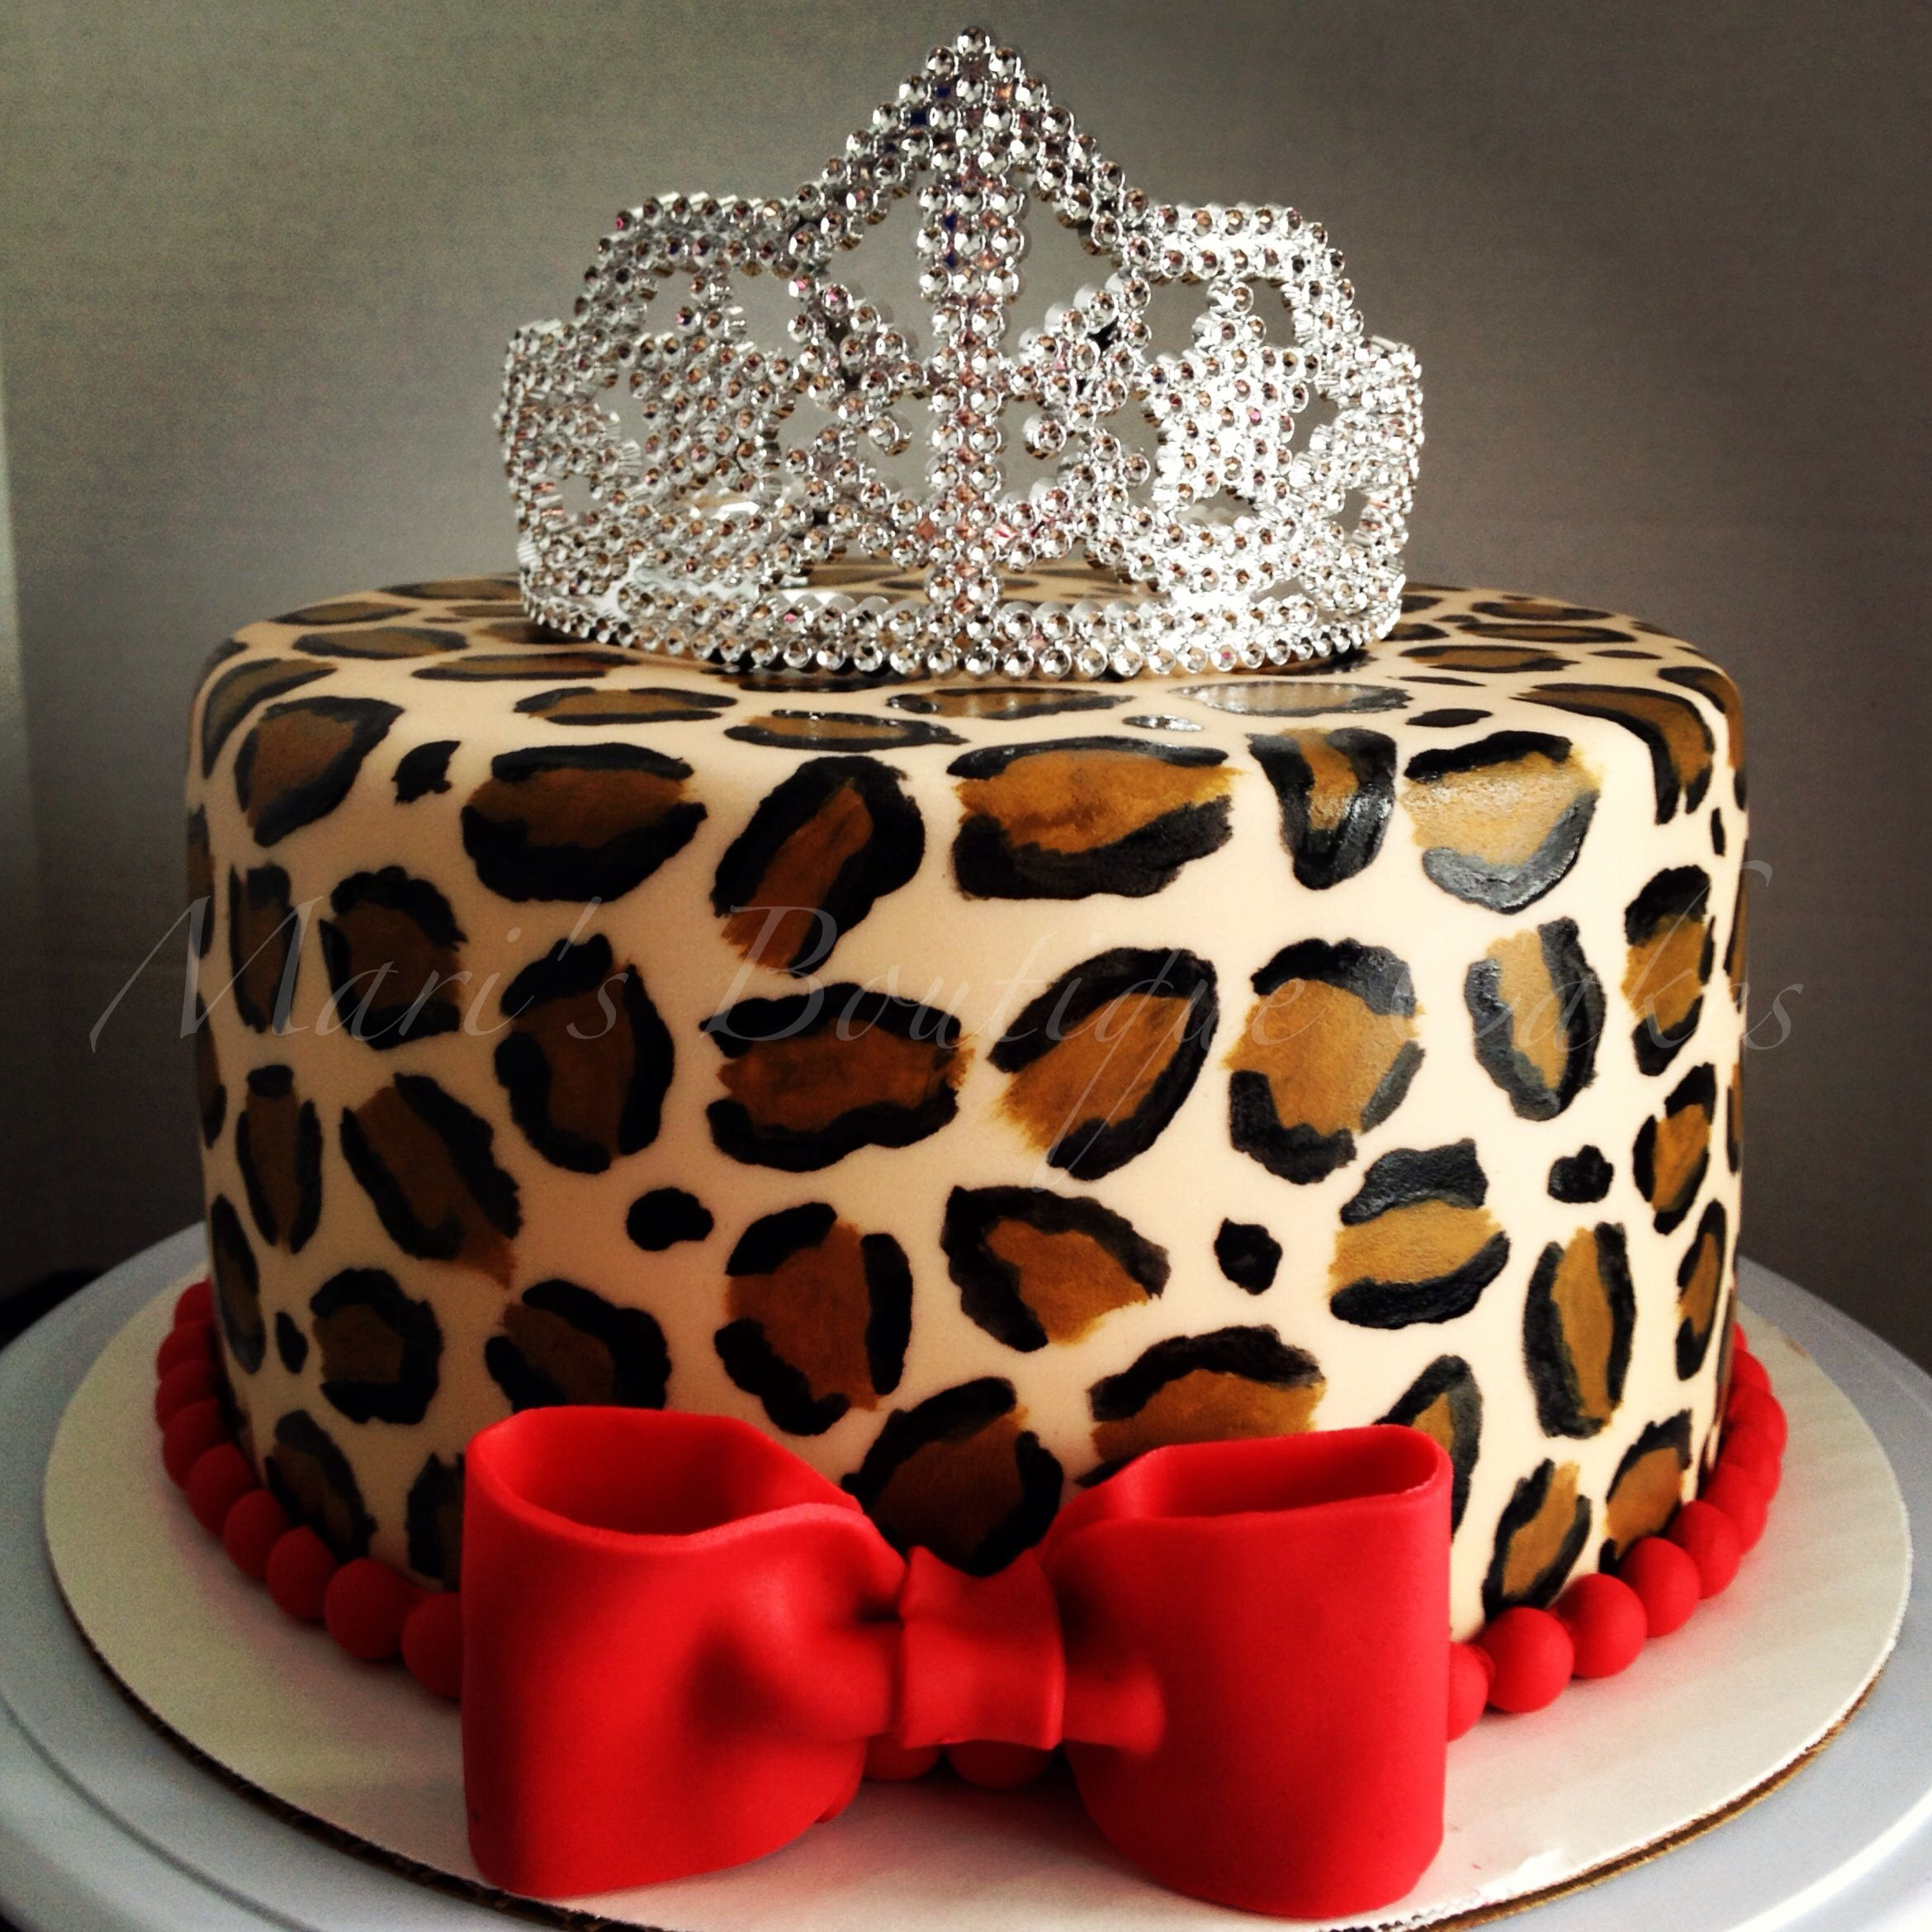 Leopard Print Cake For A Little Diva By Maris Boutique Cakes